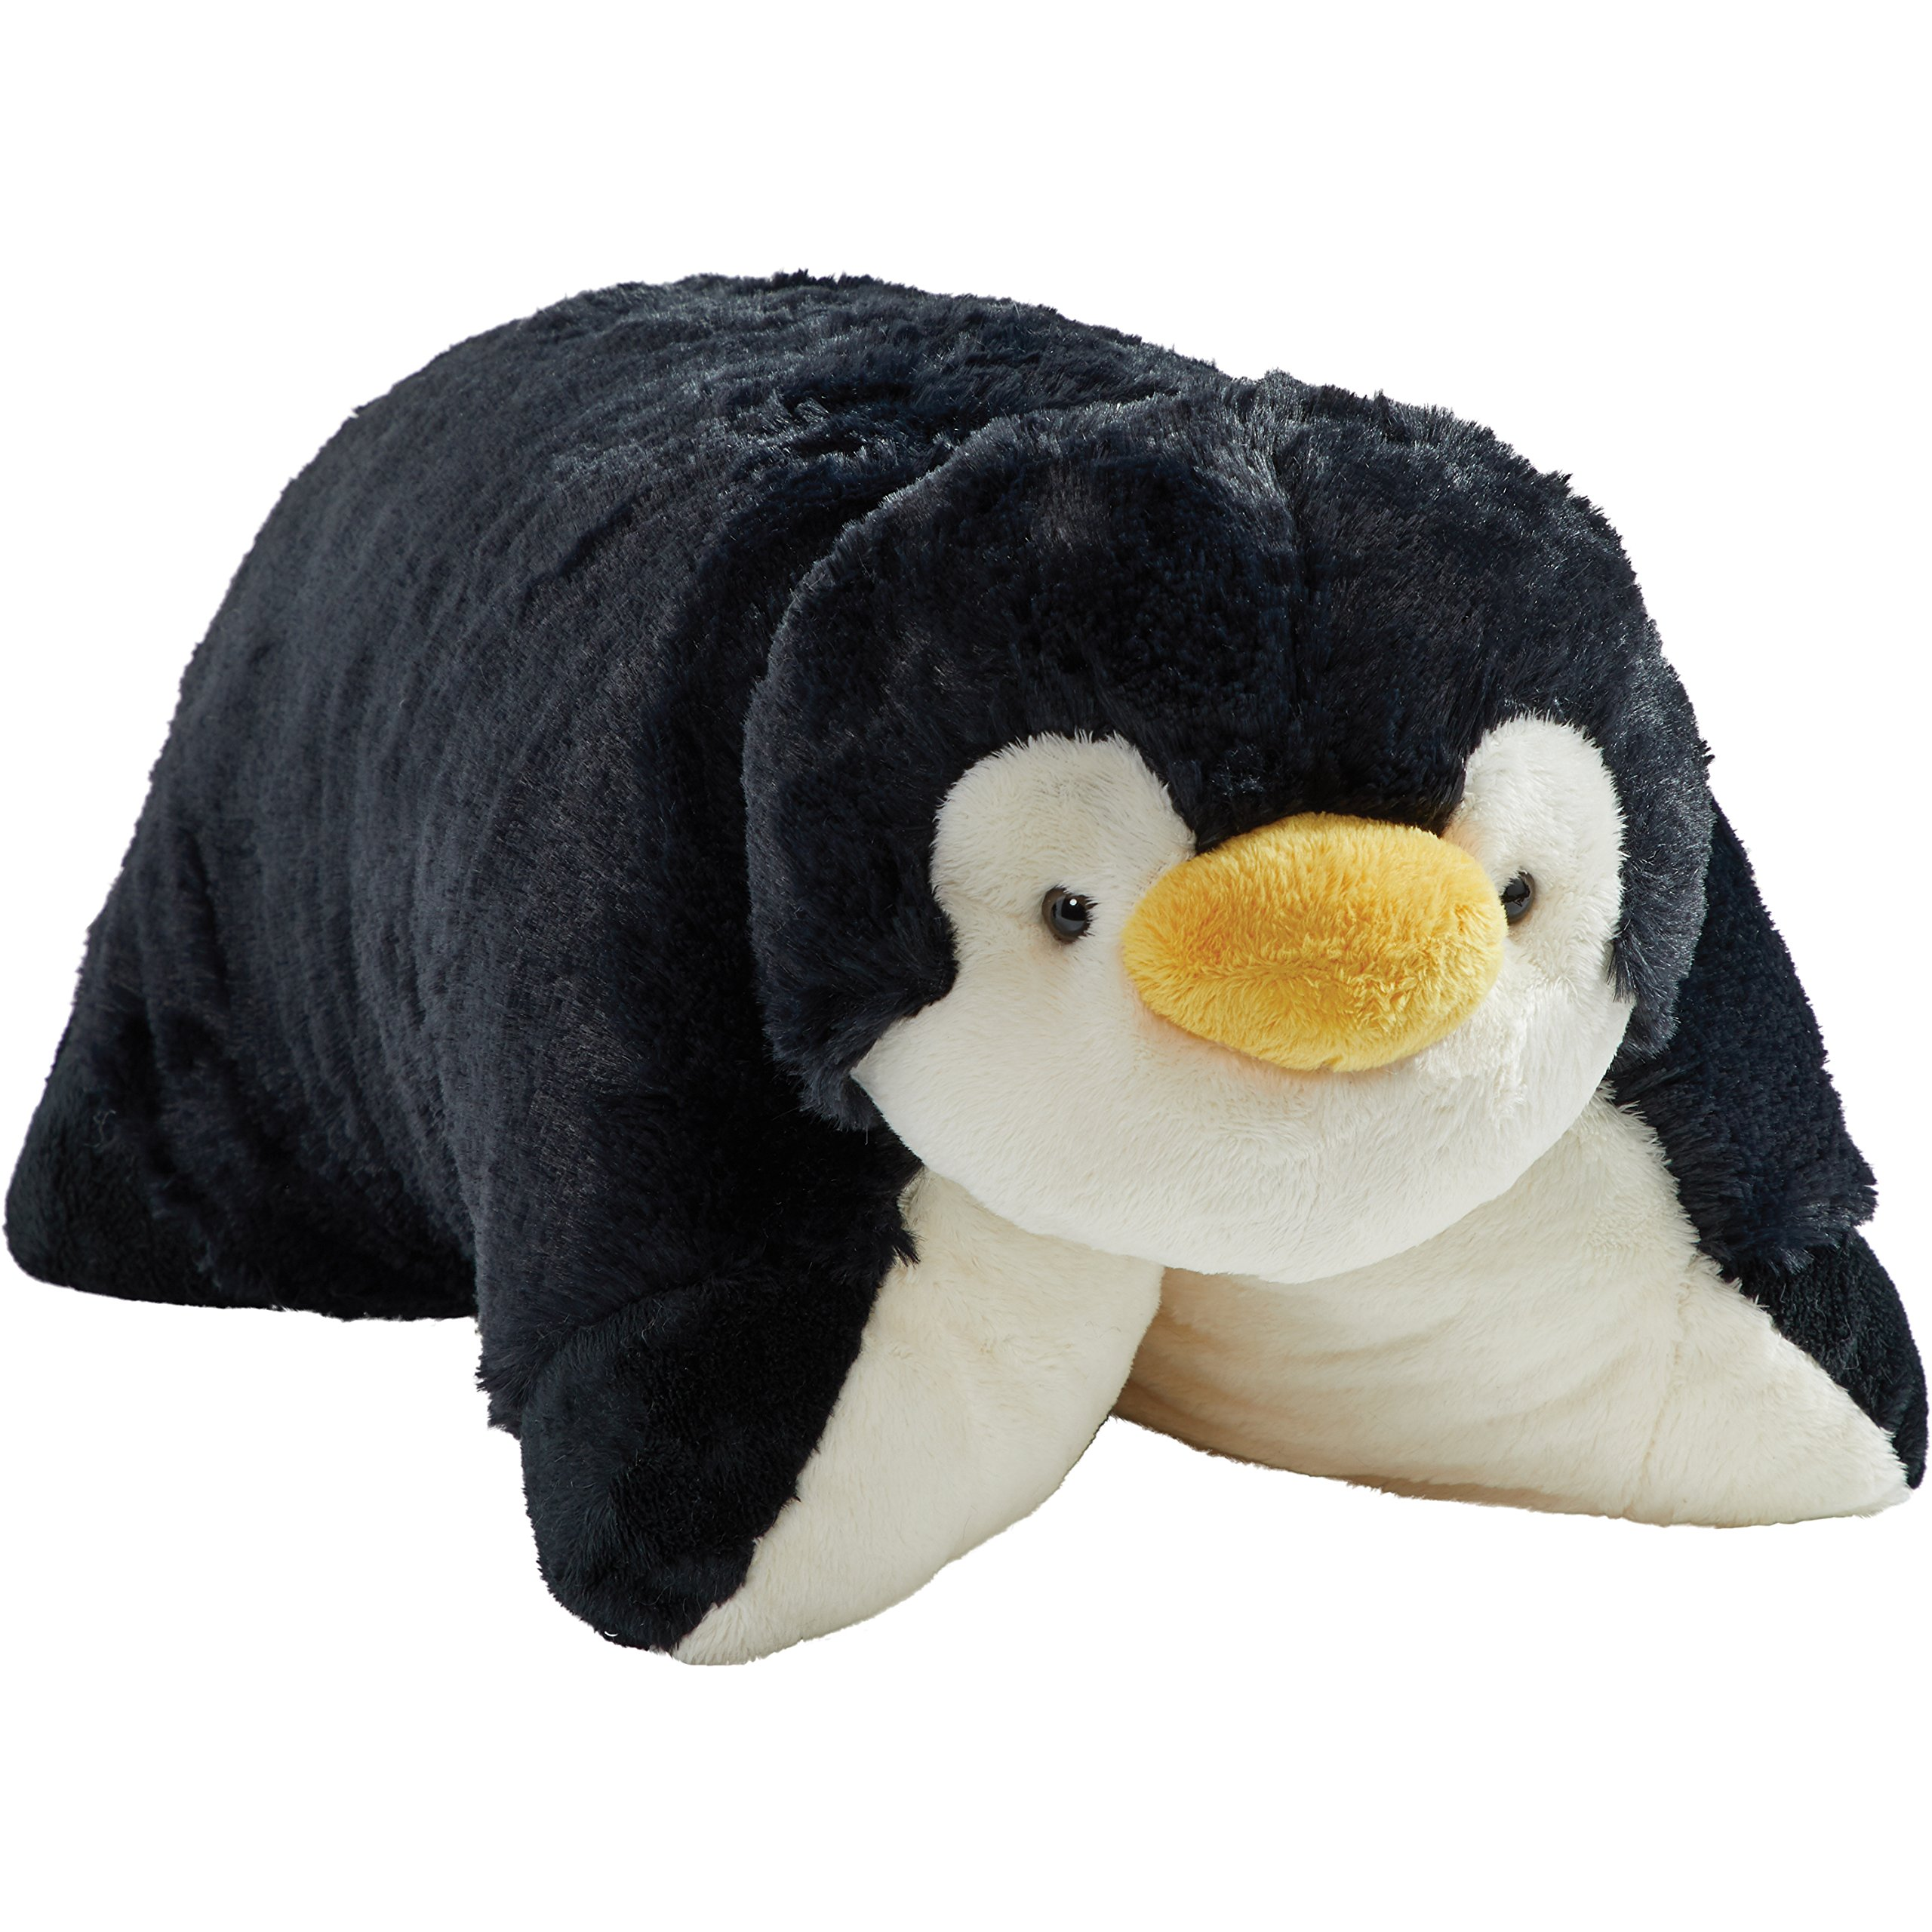 Pillow Pets Signature Stuffed Animal Plush Toy 18'', Playful Penguin